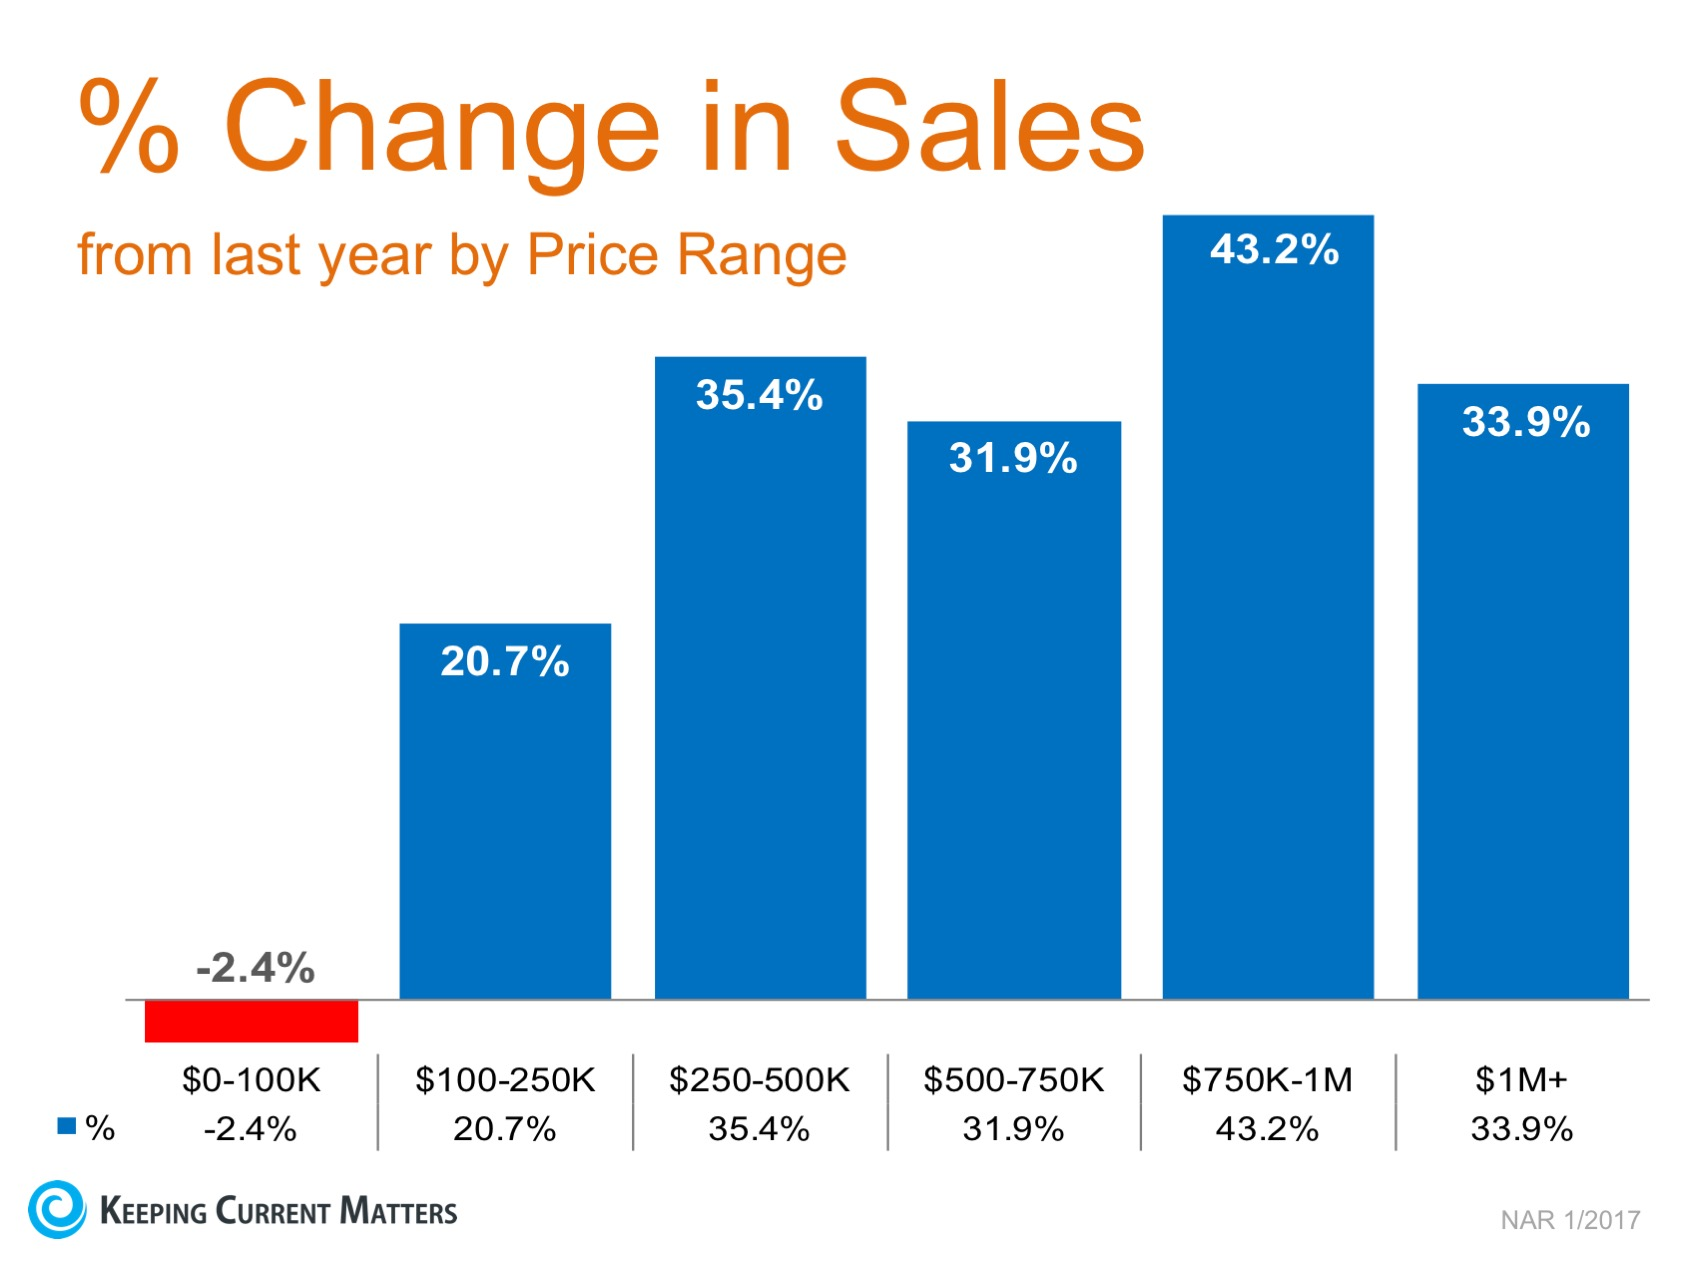 Year-Over-Year Sales Increases Reach Double Digits in 5 Price Categories | Keeping Current Matters